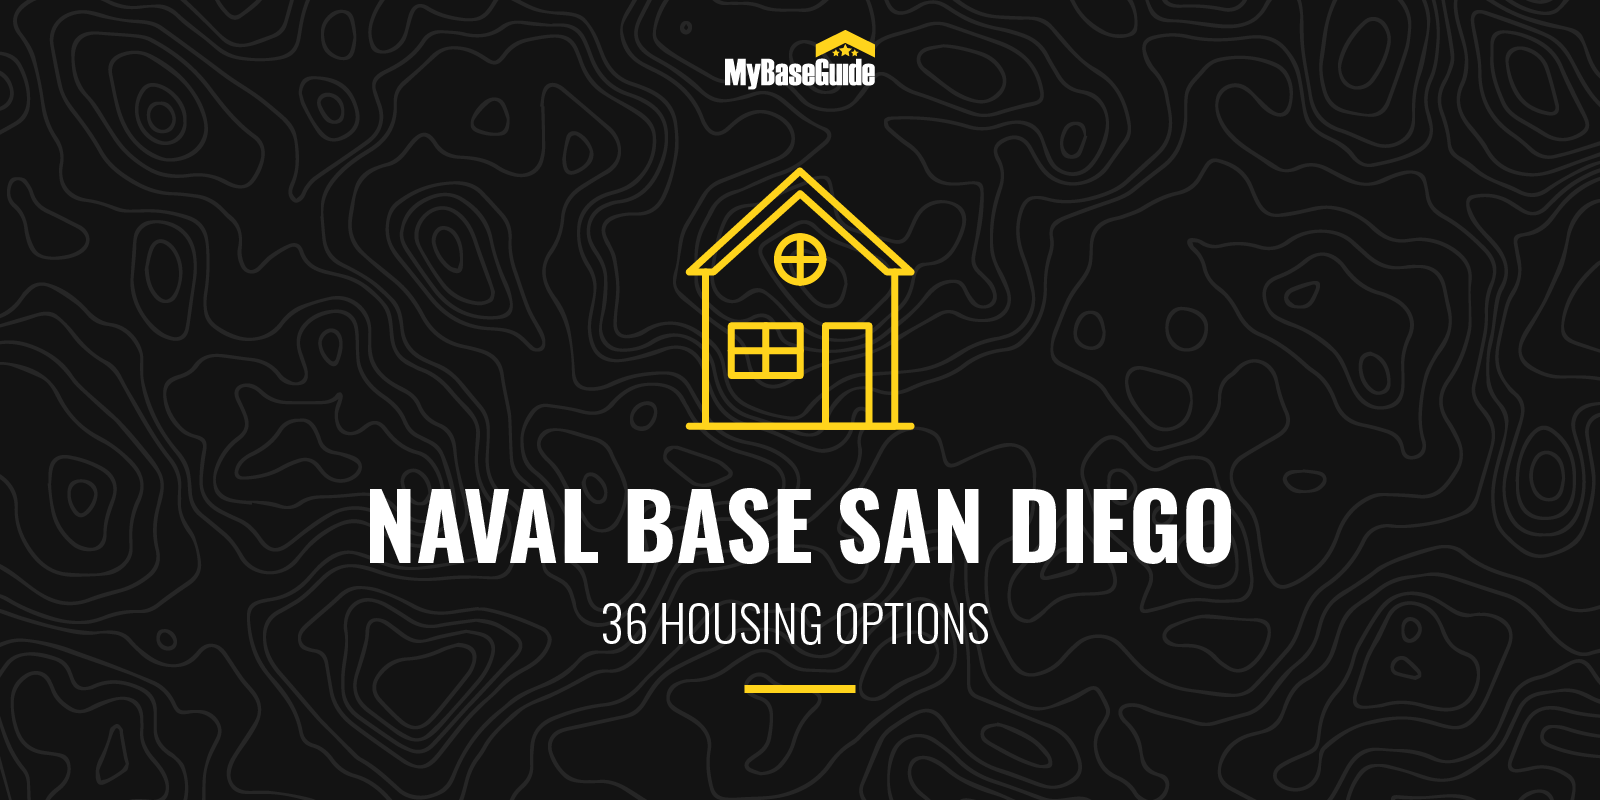 36 Naval Base San Diego Housing Options